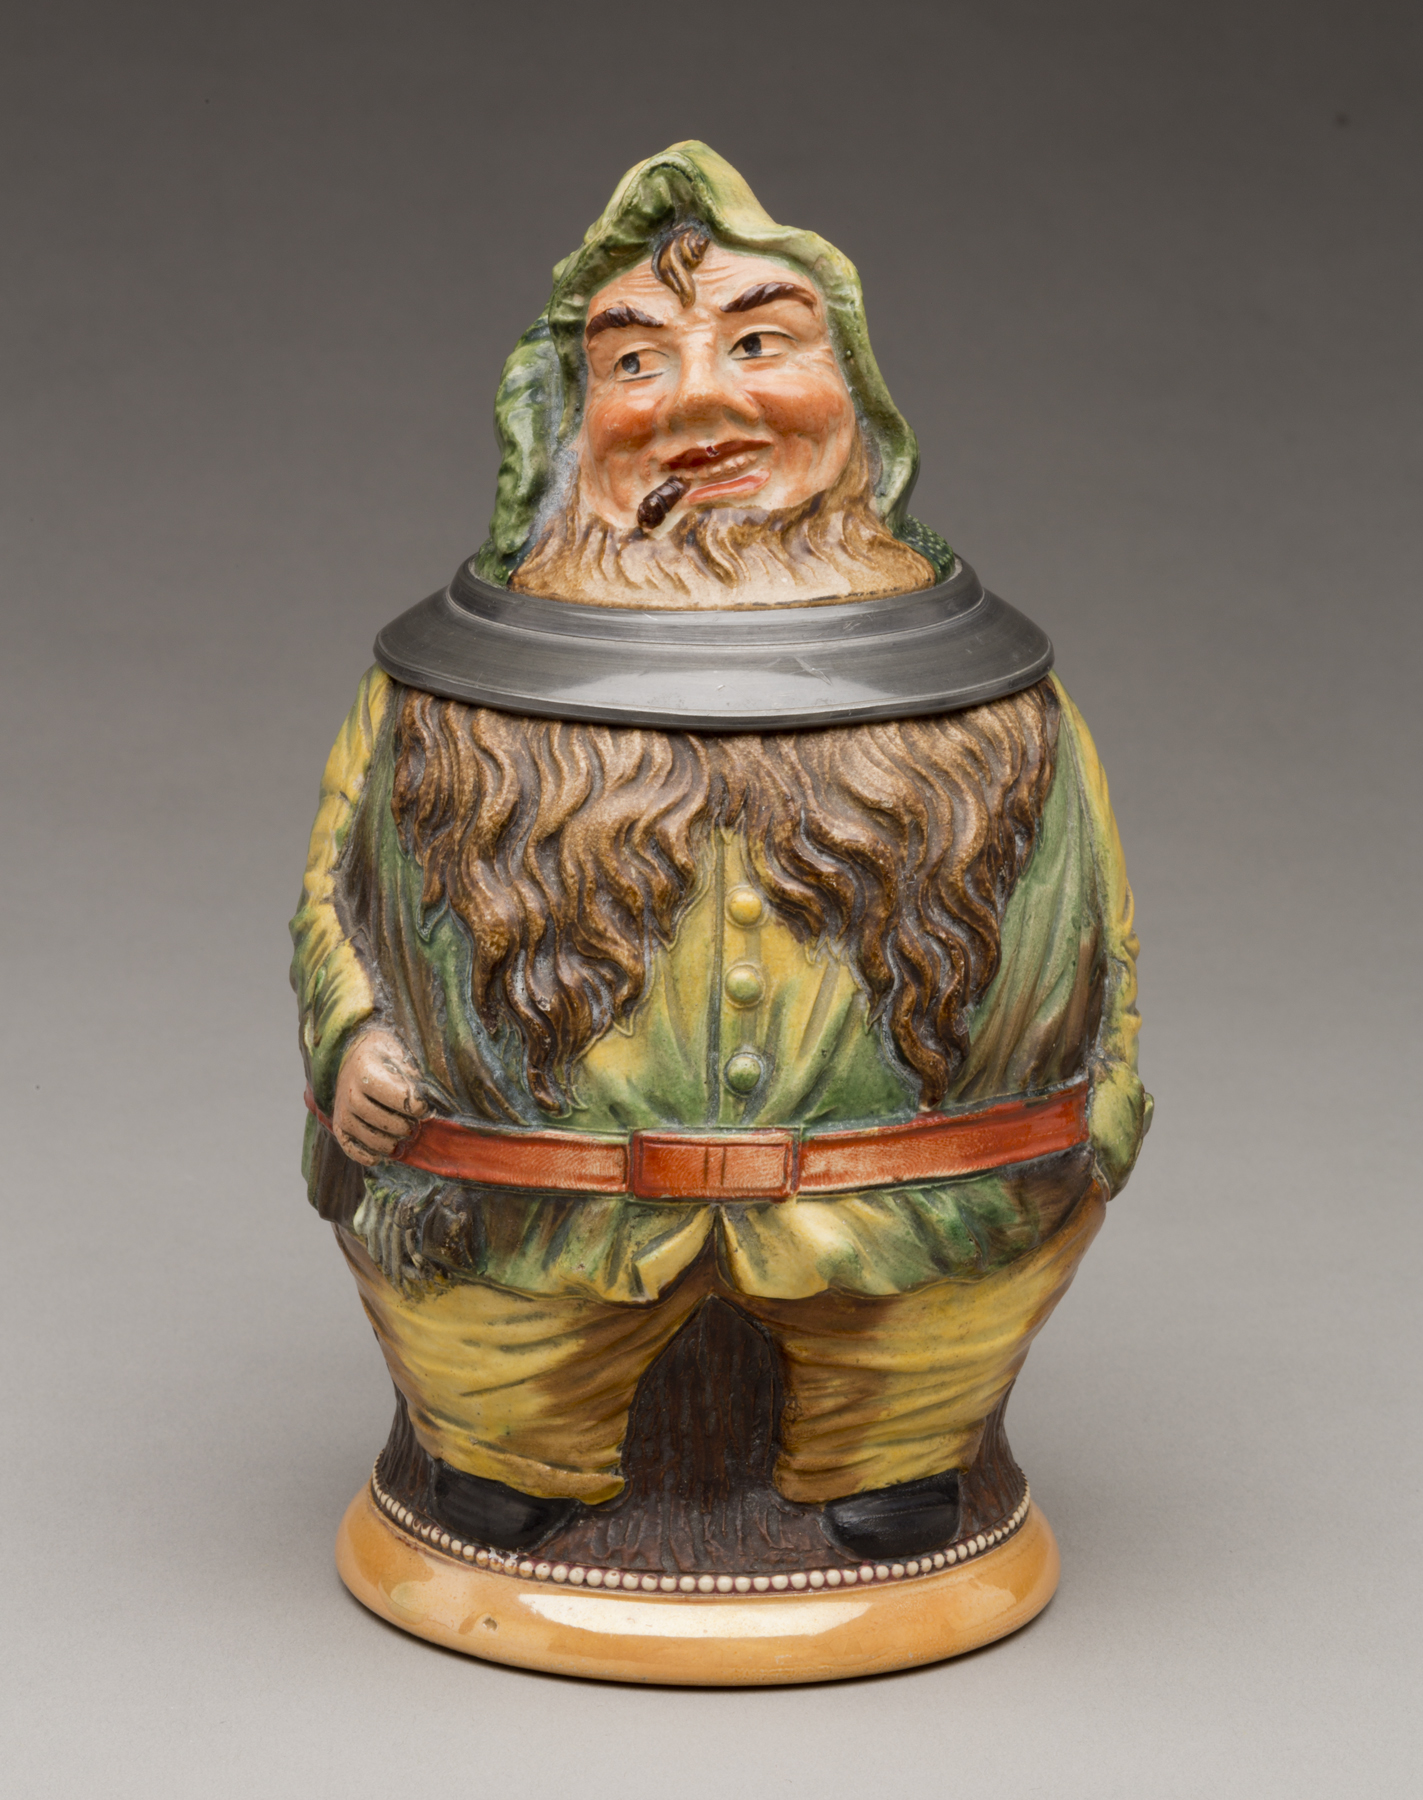 """German. """"Elf"""" Stein, ca. 1900. Earthenware with colored slip and glaze decoration, and pewter. Milwaukee Art Museum, Bequest of Dorothy Trommel in memory of her parents, Eunice and Howard Wertenberg M2013.44. Photo by John R. Glembin."""